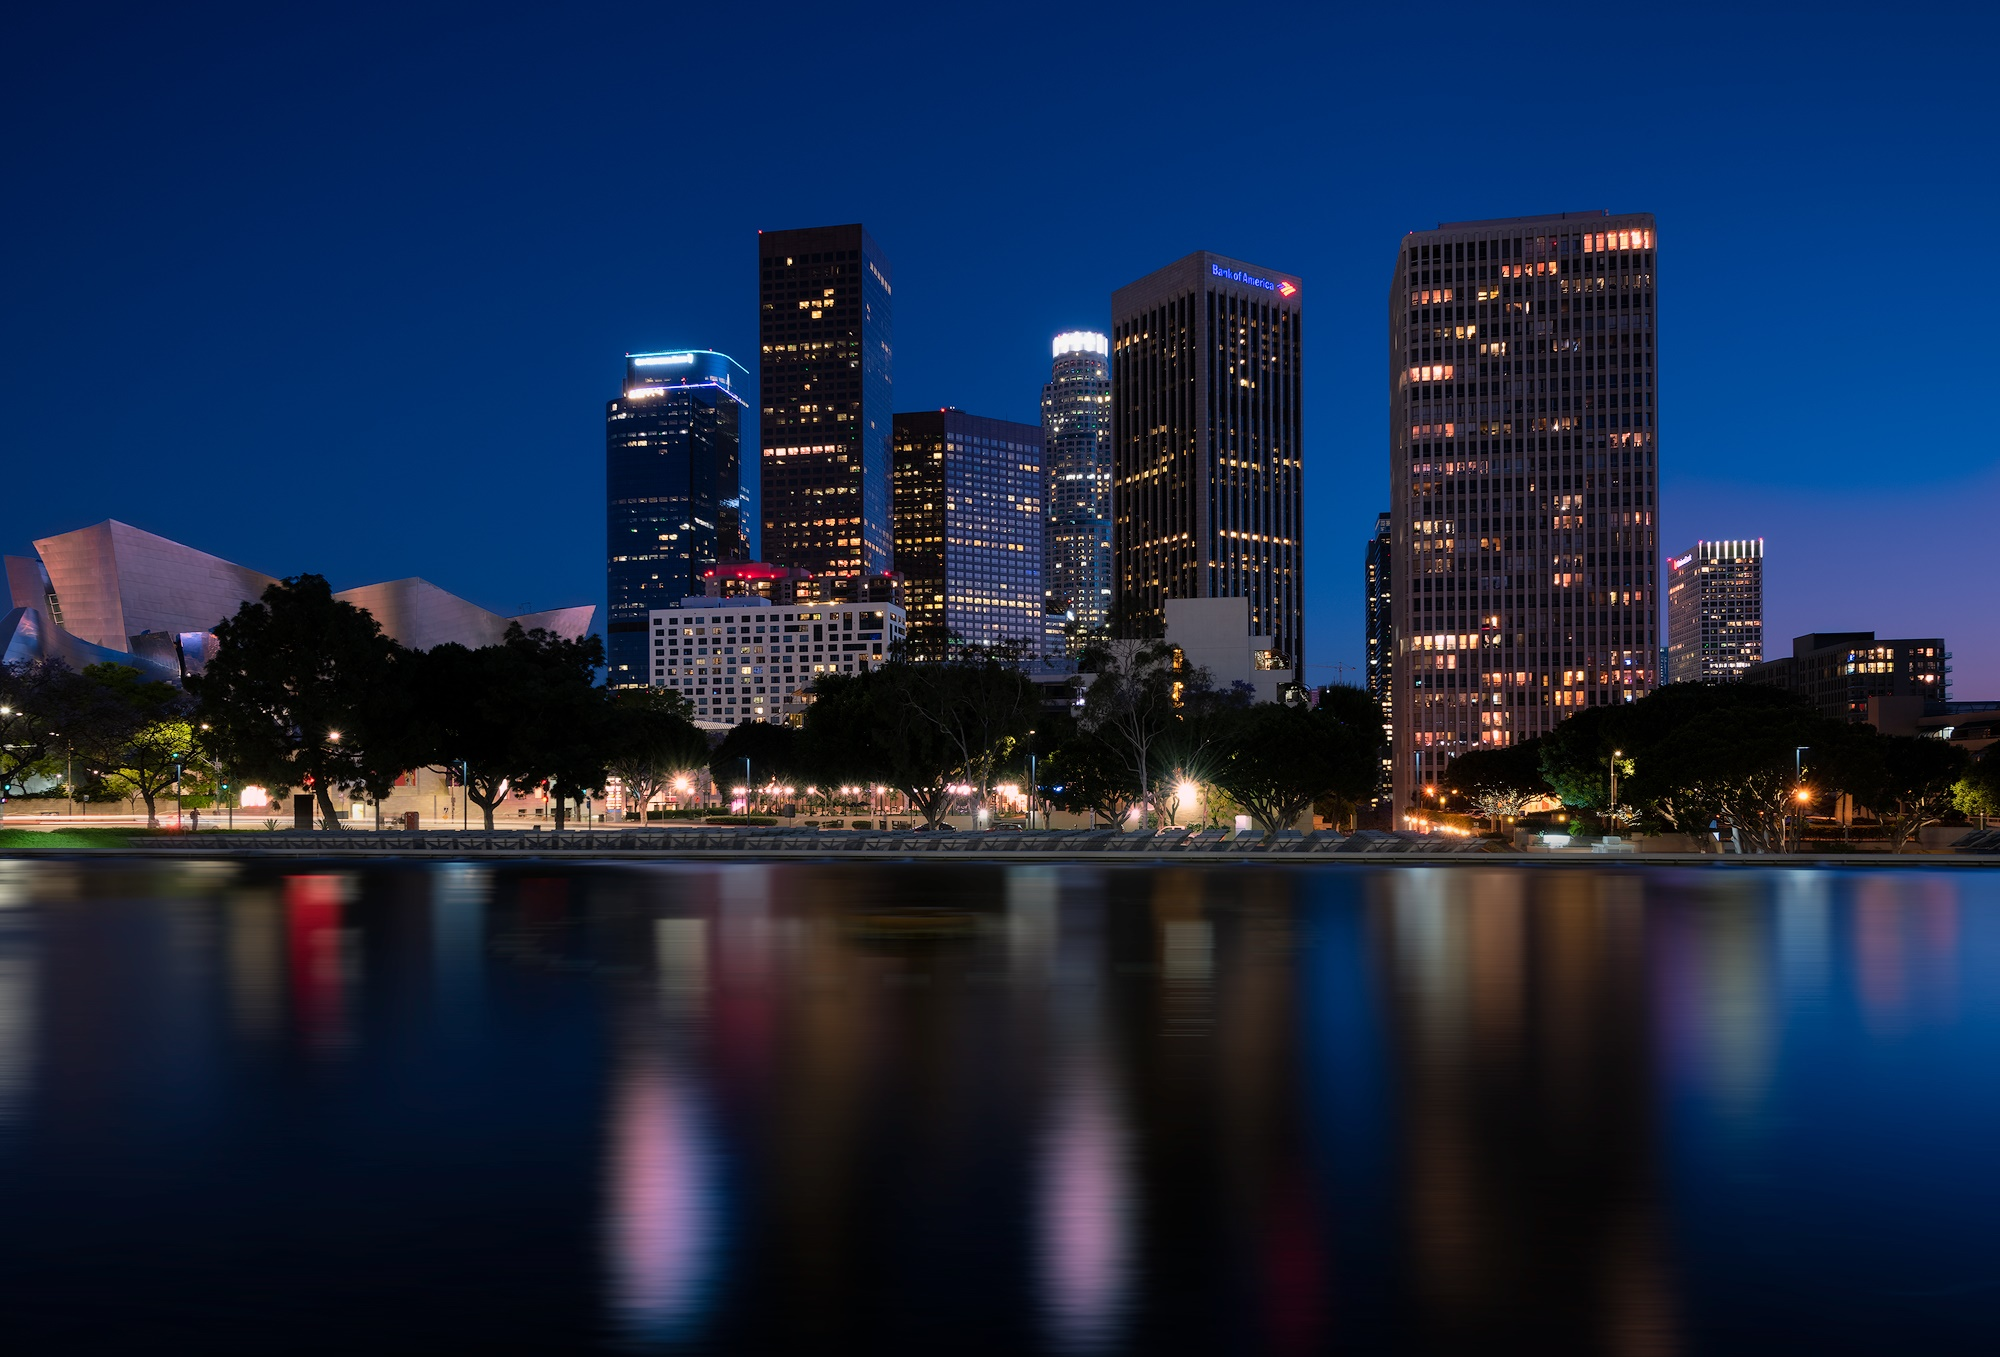 Photo of Los Angeles Department of Water and Power lagoon taken by Greg Smith